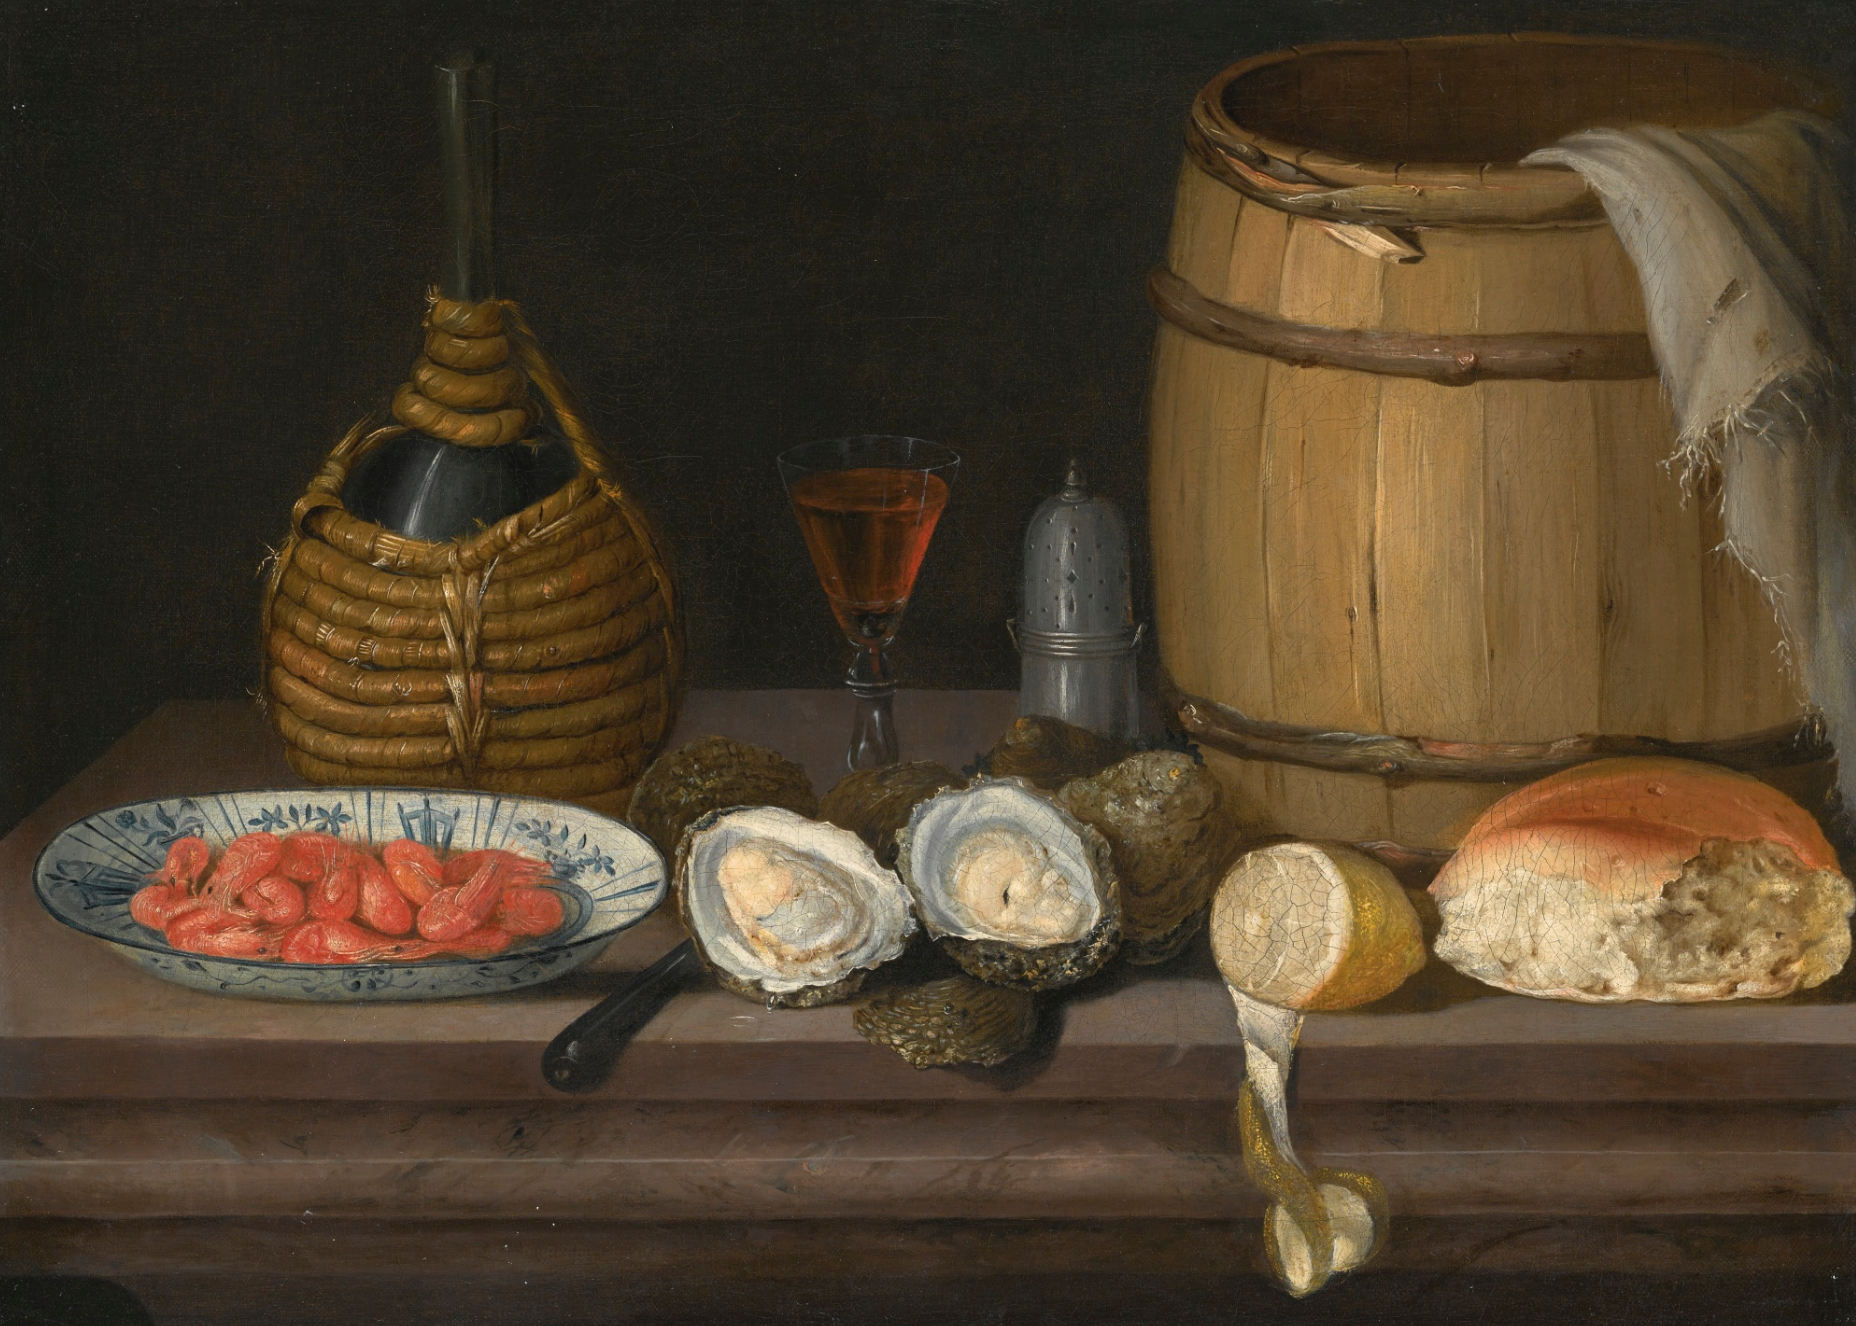 Decoding The Hidden Meanings In Still Life Painting Mearto